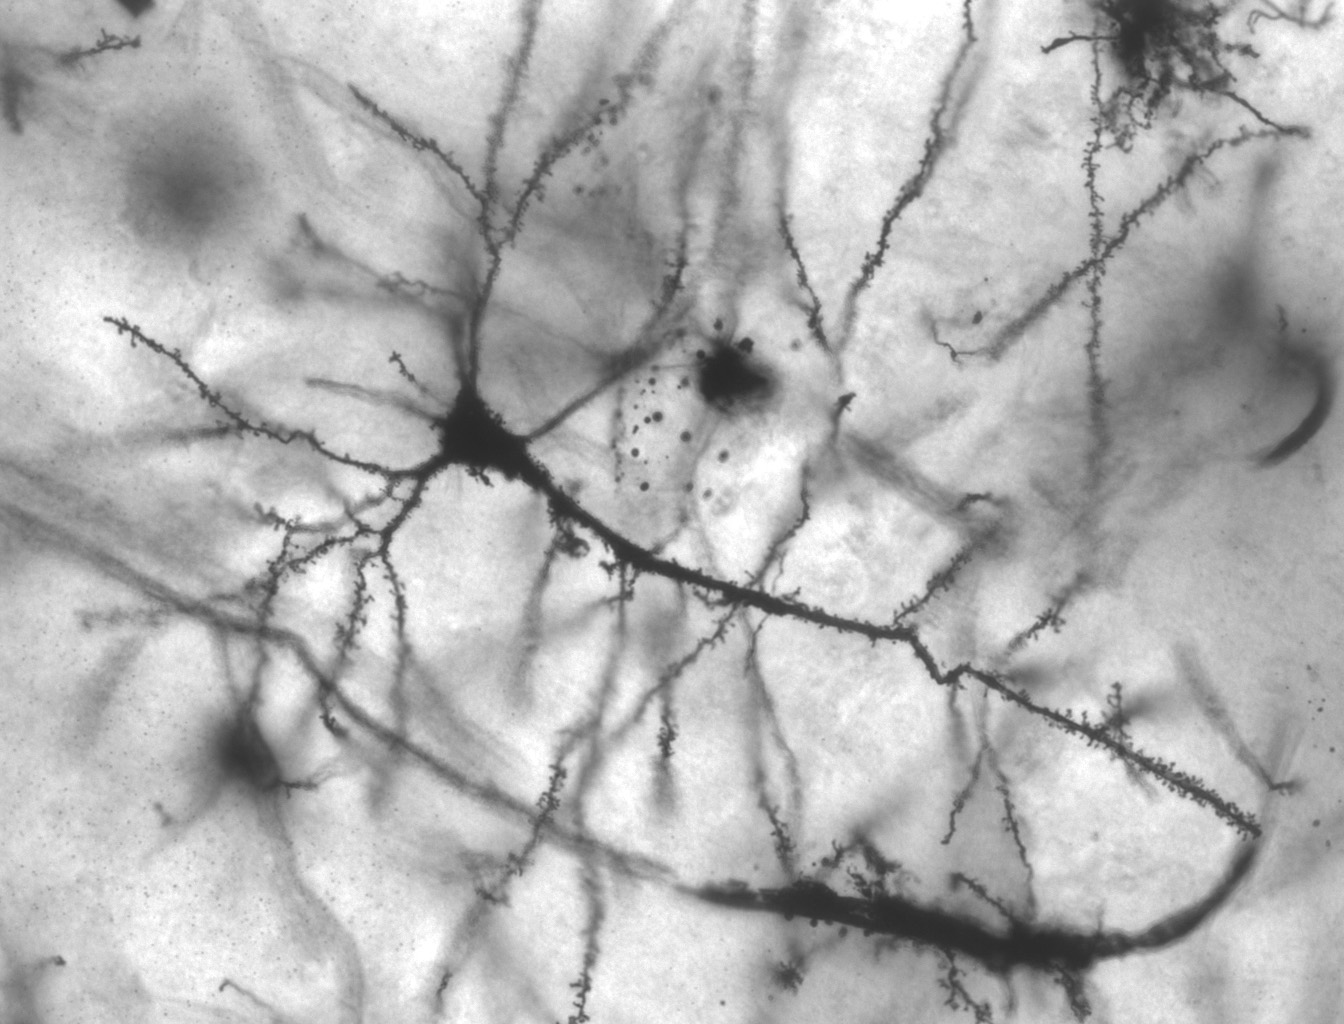 Photomicrograph of dendrites of hippocampus neuron showing dendritic spines